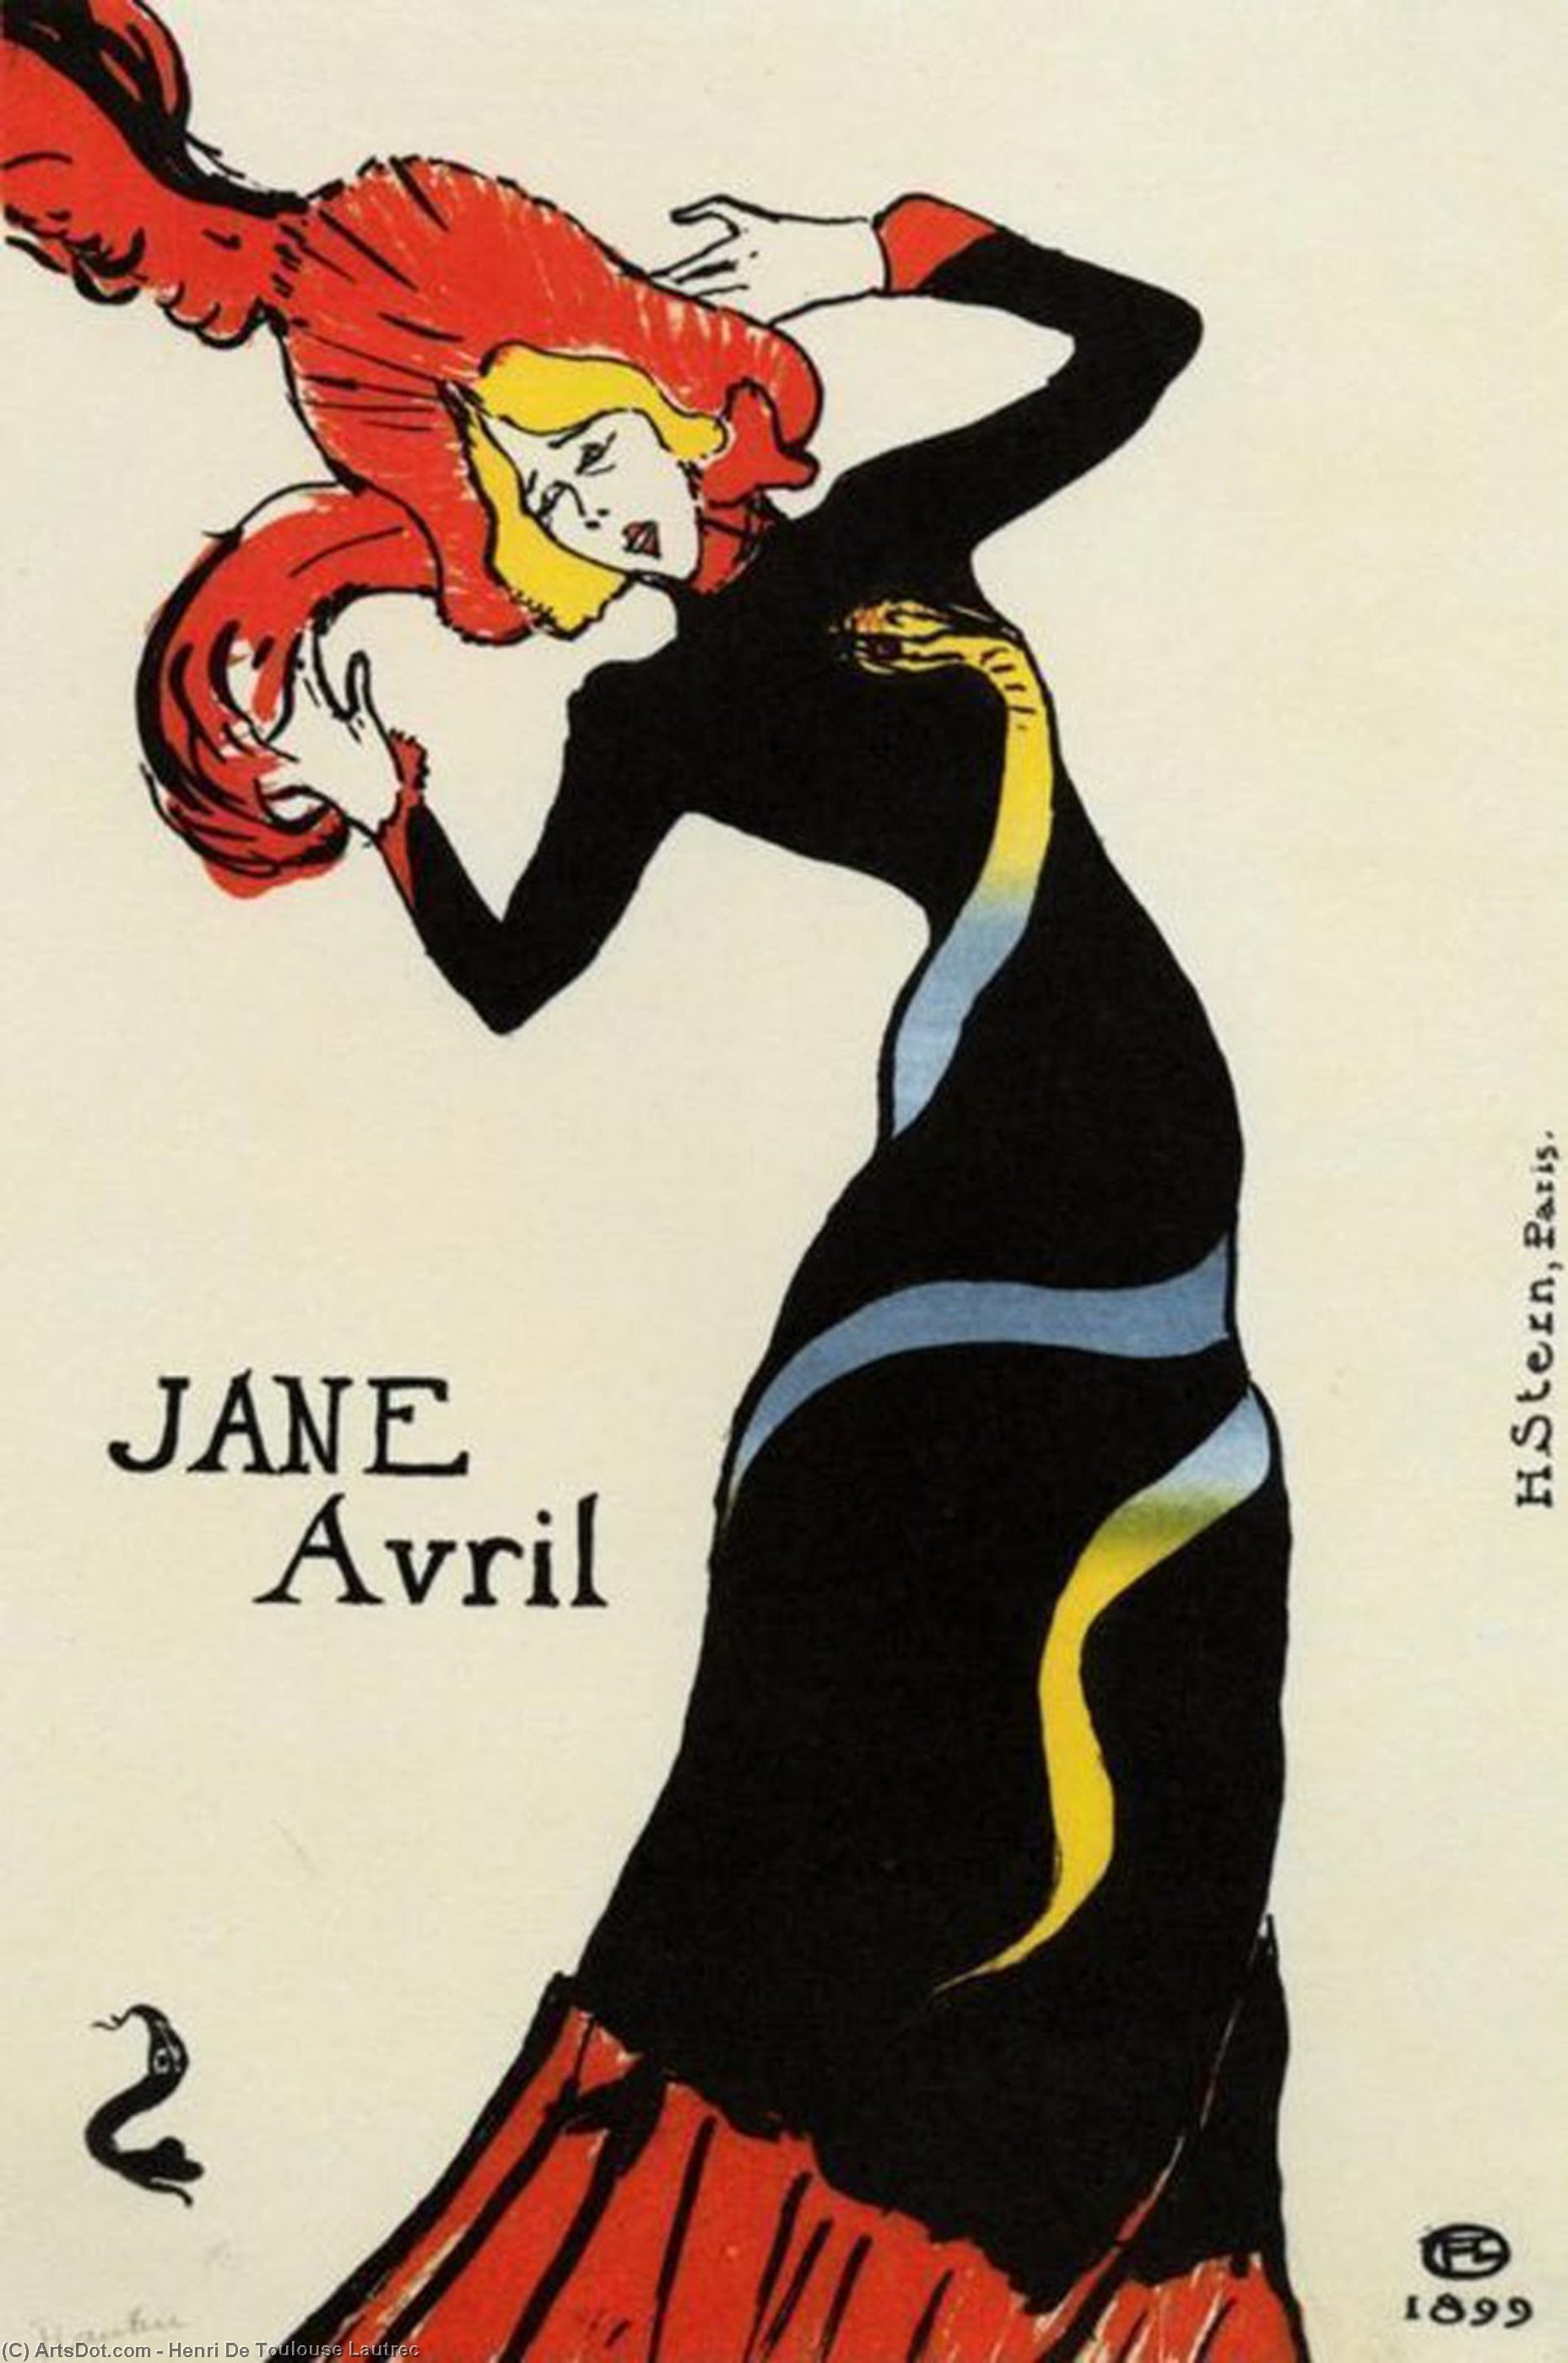 Jane Avril, 1899 by Henri De Toulouse Lautrec (1864-1901, France)